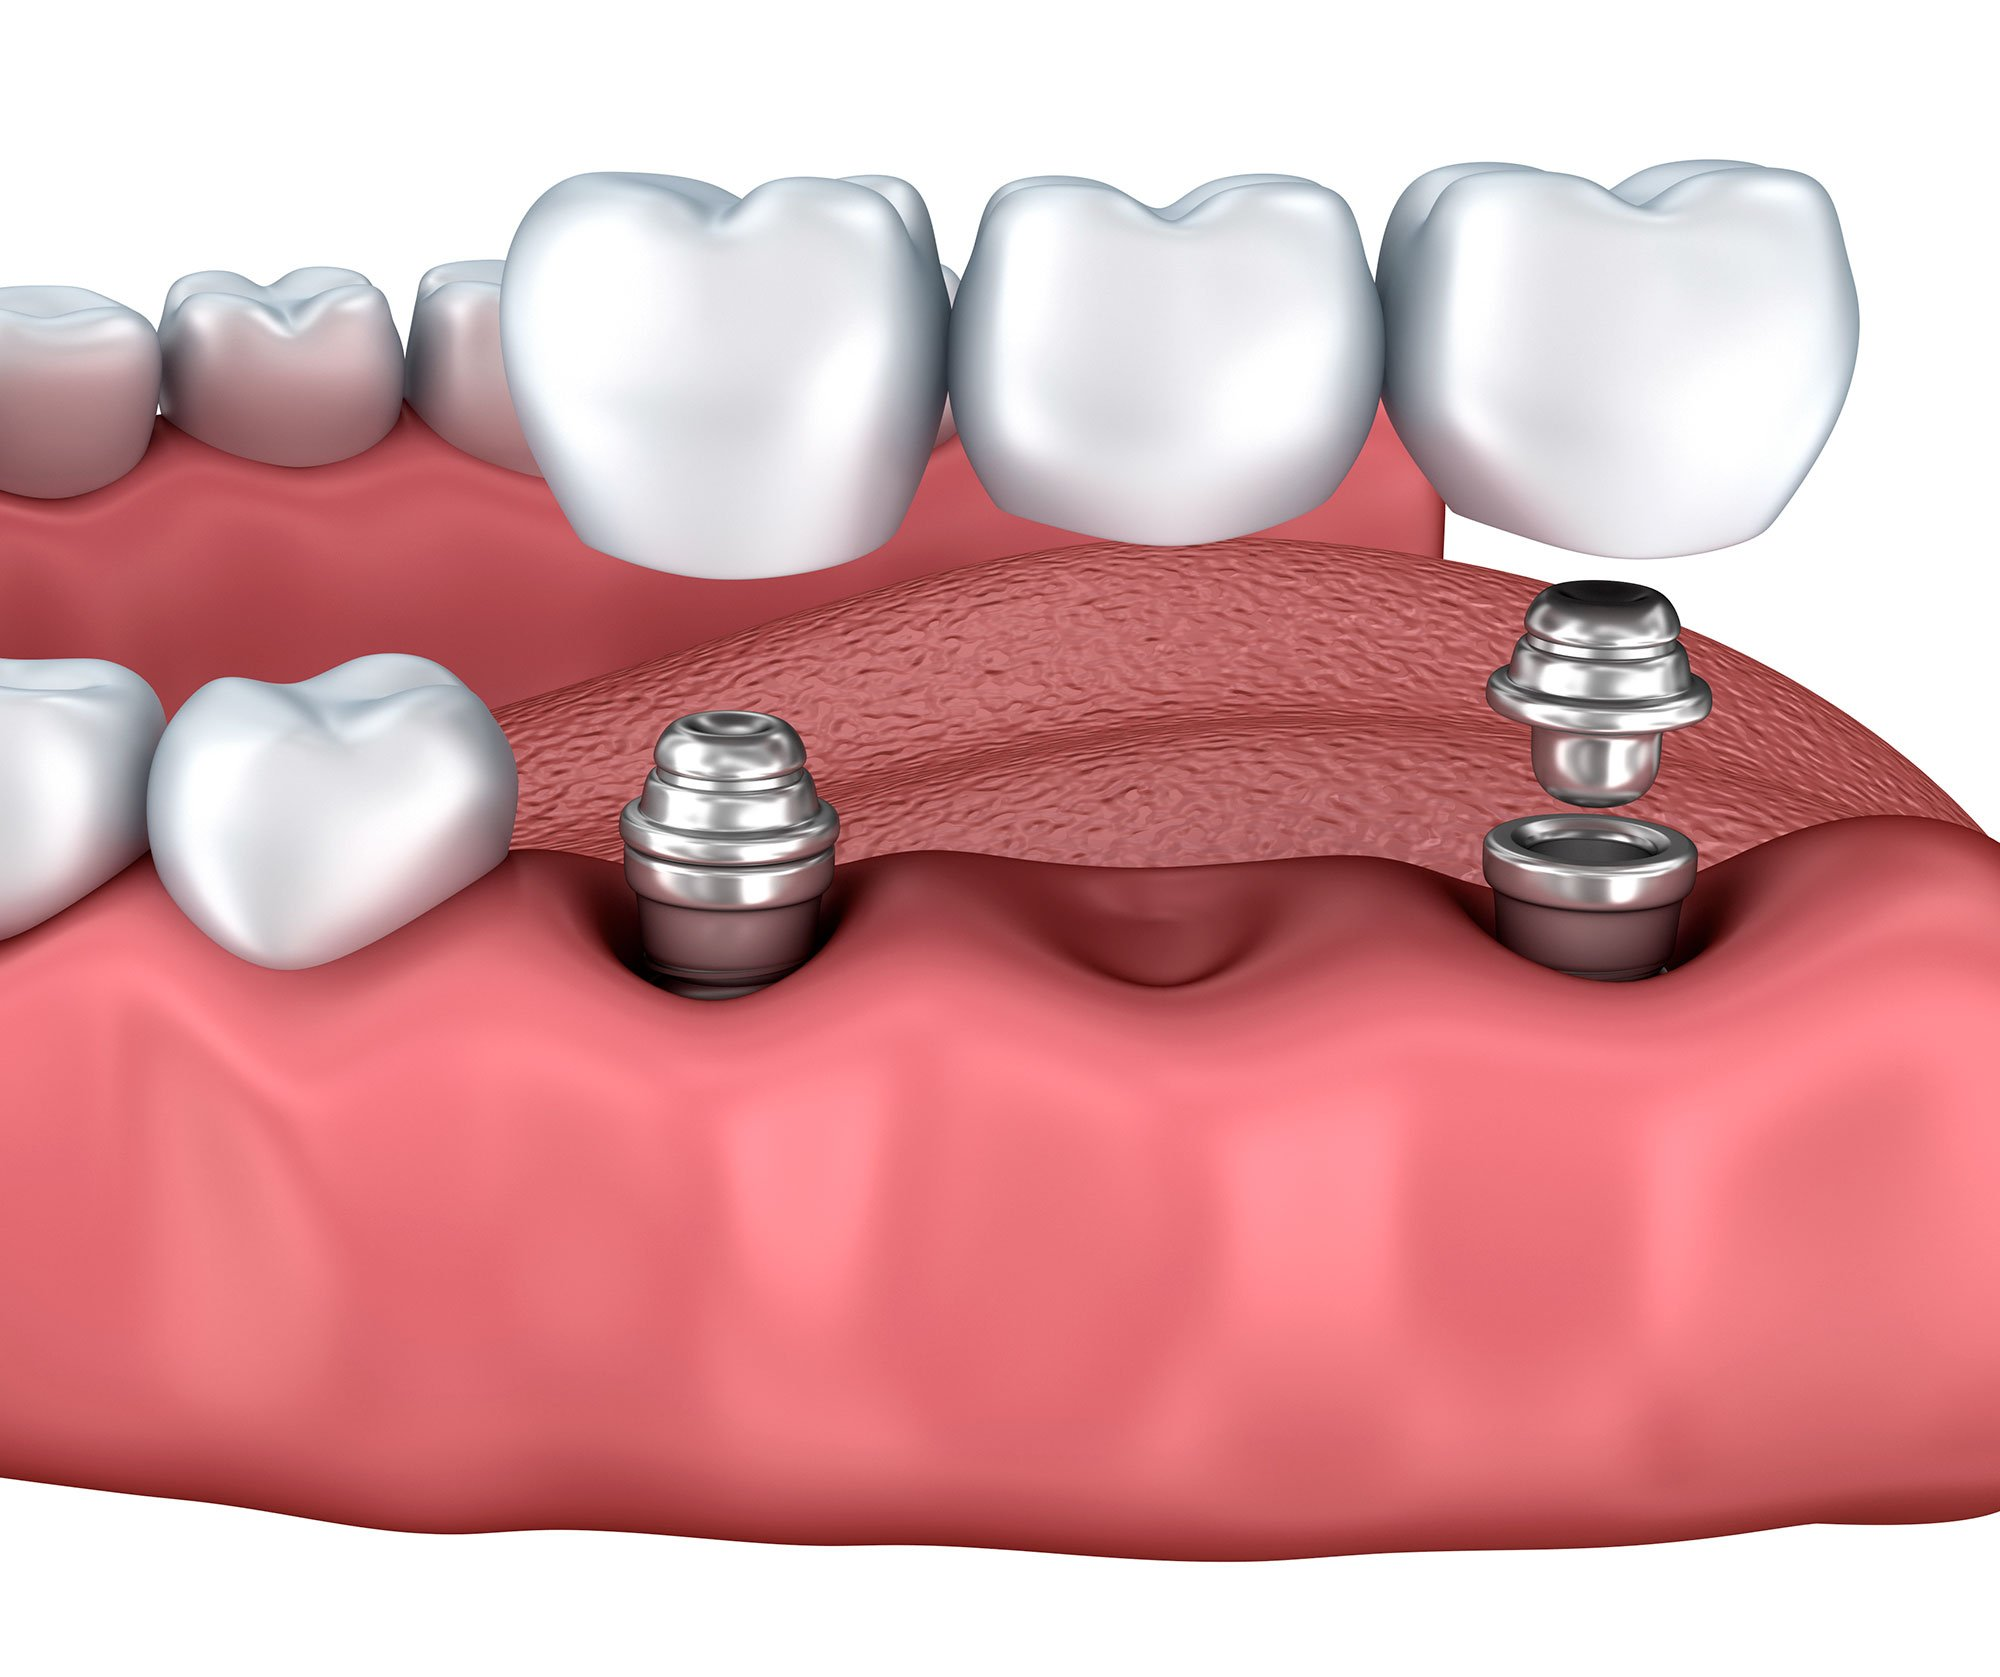 Multi Tooth Implants - Dental Surgery Services - We Create Smiles